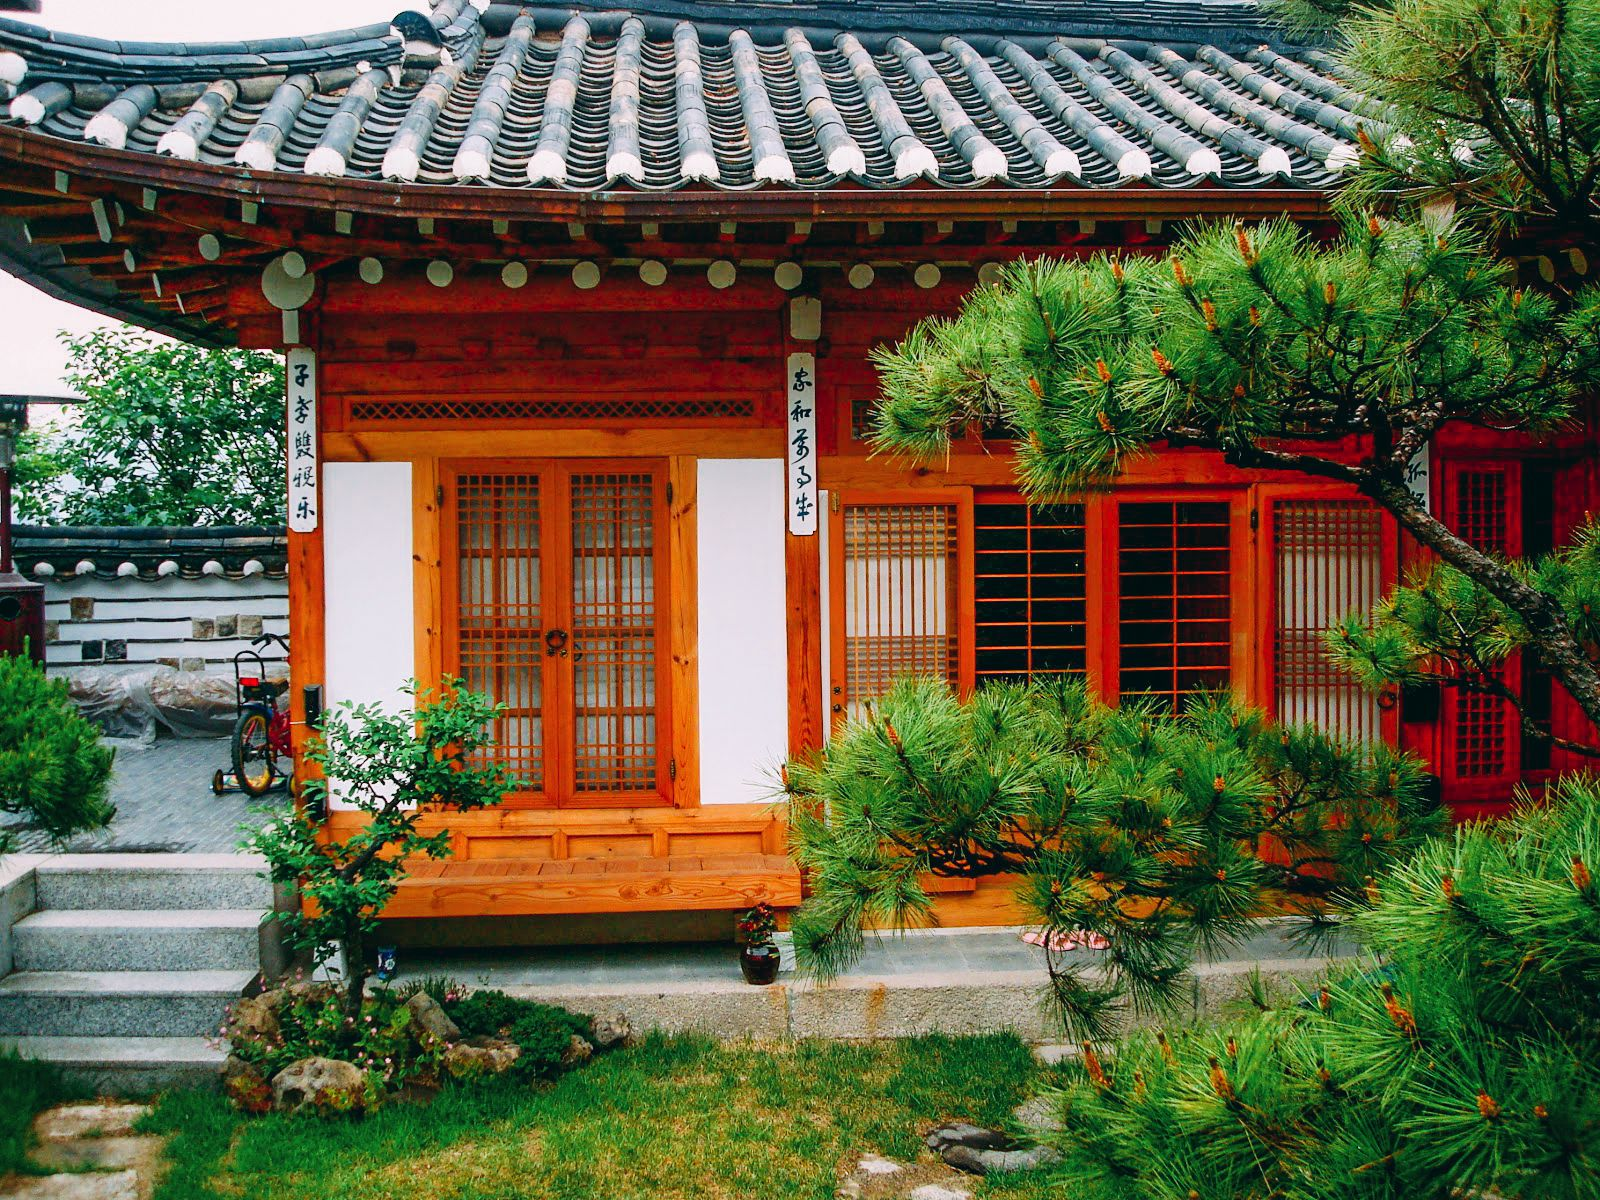 an analysis of traditional korean house Of a korean traditional wooden structure has its amplitude depen-dence [3] lee et al proposed an analysis method for estimating behavior of a single wooden frame by modeling its joint shear and rotational stiffness and compared it to the response measured by a 1/2 scale specimen static loading test on a korean traditional temple [4.